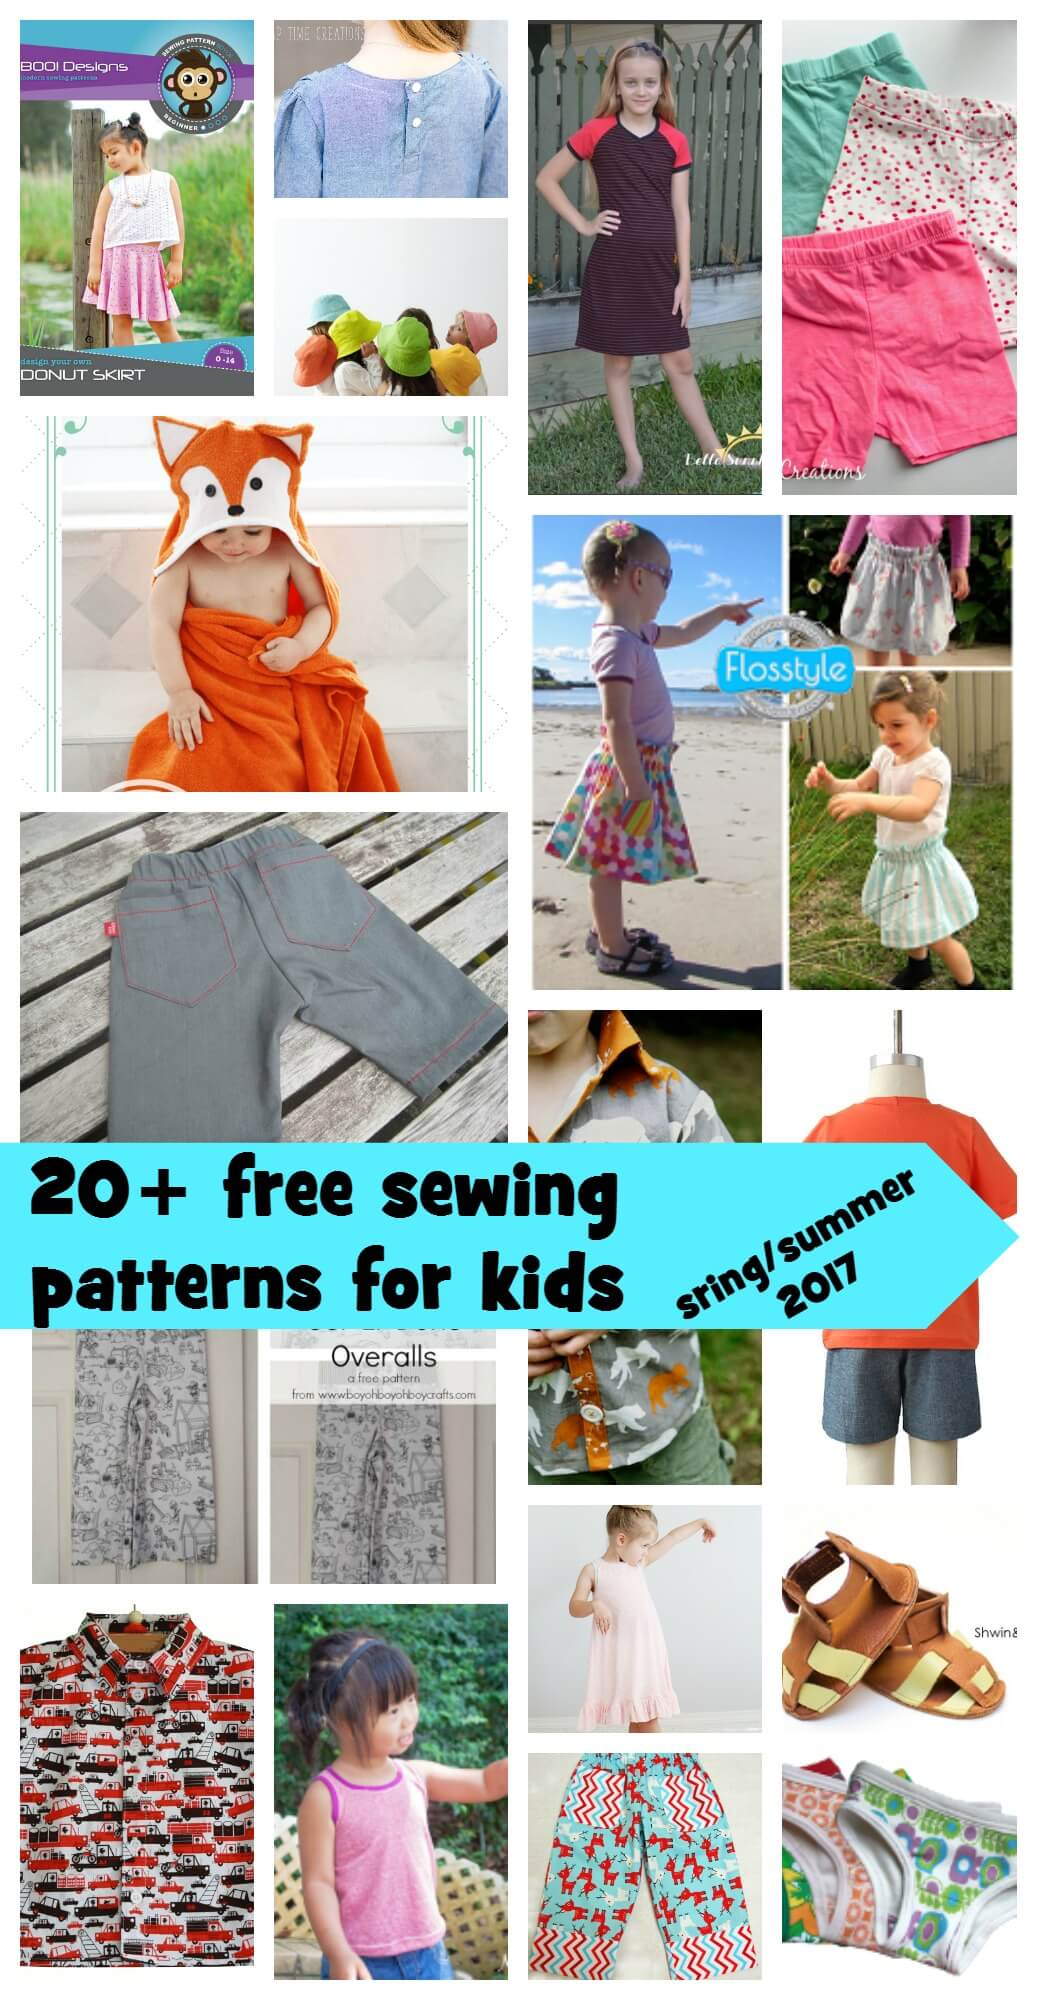 free sewing patterns for kids spring/summer 2017 from Nap-Time Creations